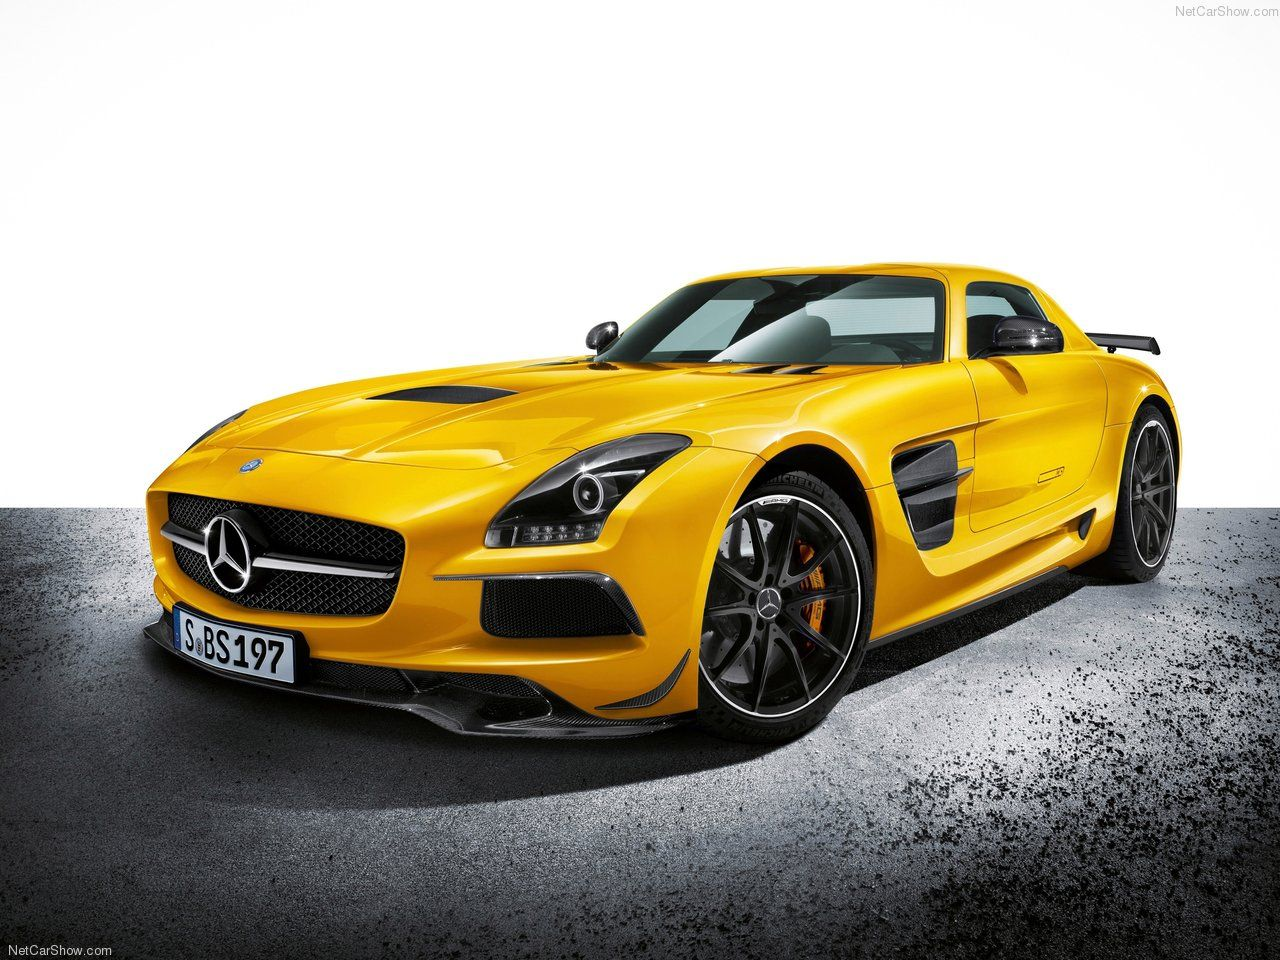 Mercedes Sls Amg Black Series This Is Not A Car This Is An